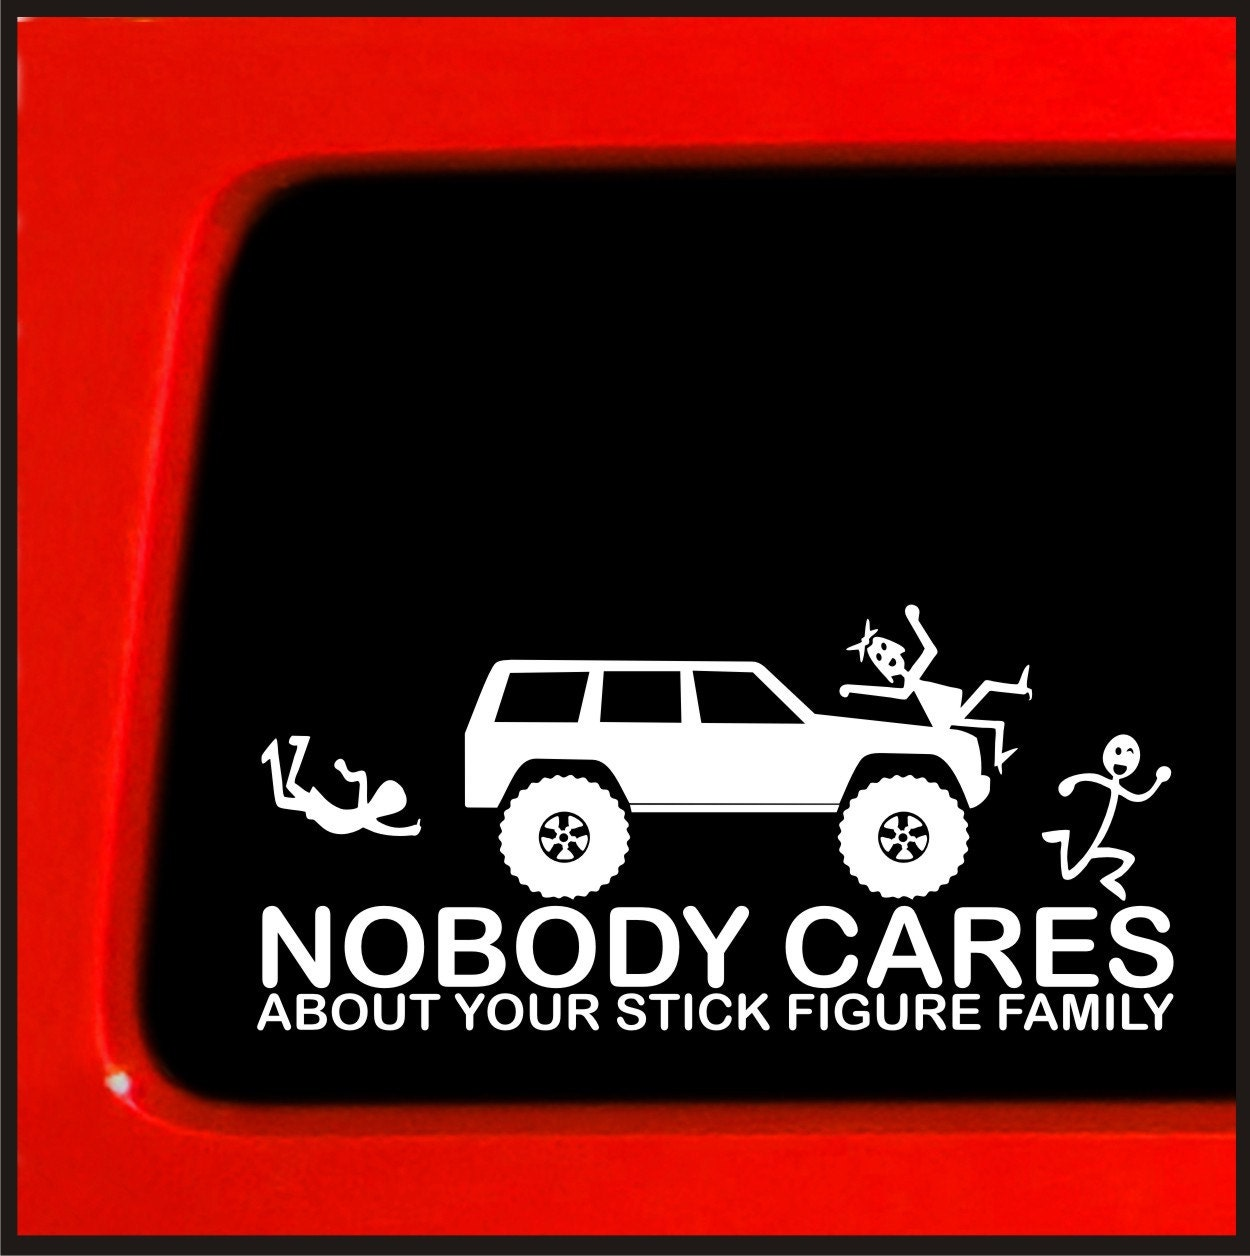 Stick figure family sticker for jeep cherokee nobody cares funny decal for car truck laptop